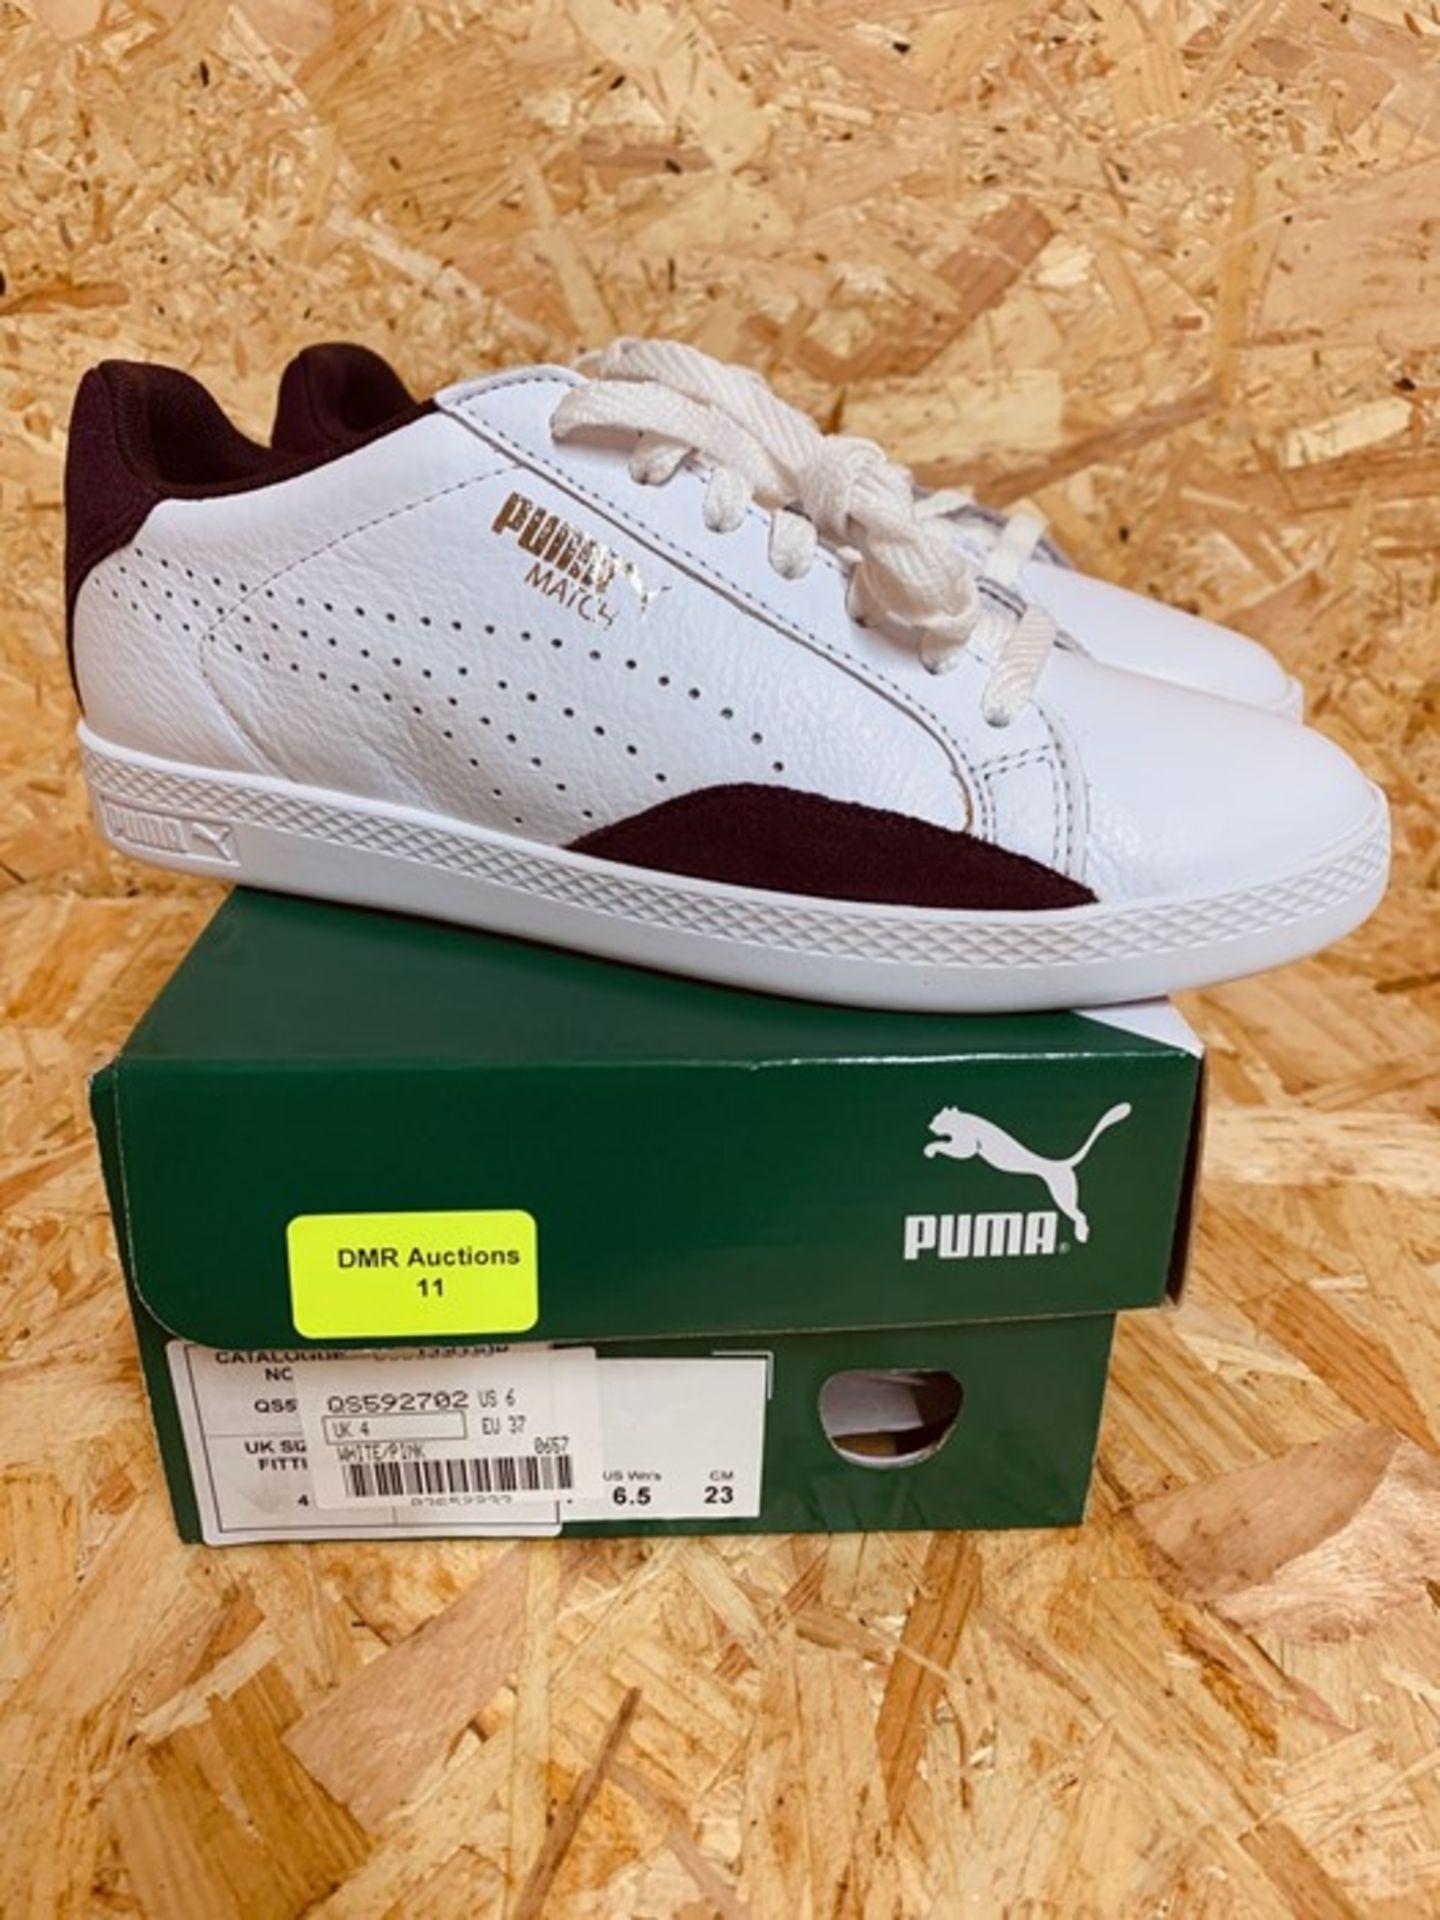 PUMA LADIES LO MATCH BASIC SPORTS TRAINER - UK SIZE 4/WHITE/PINK